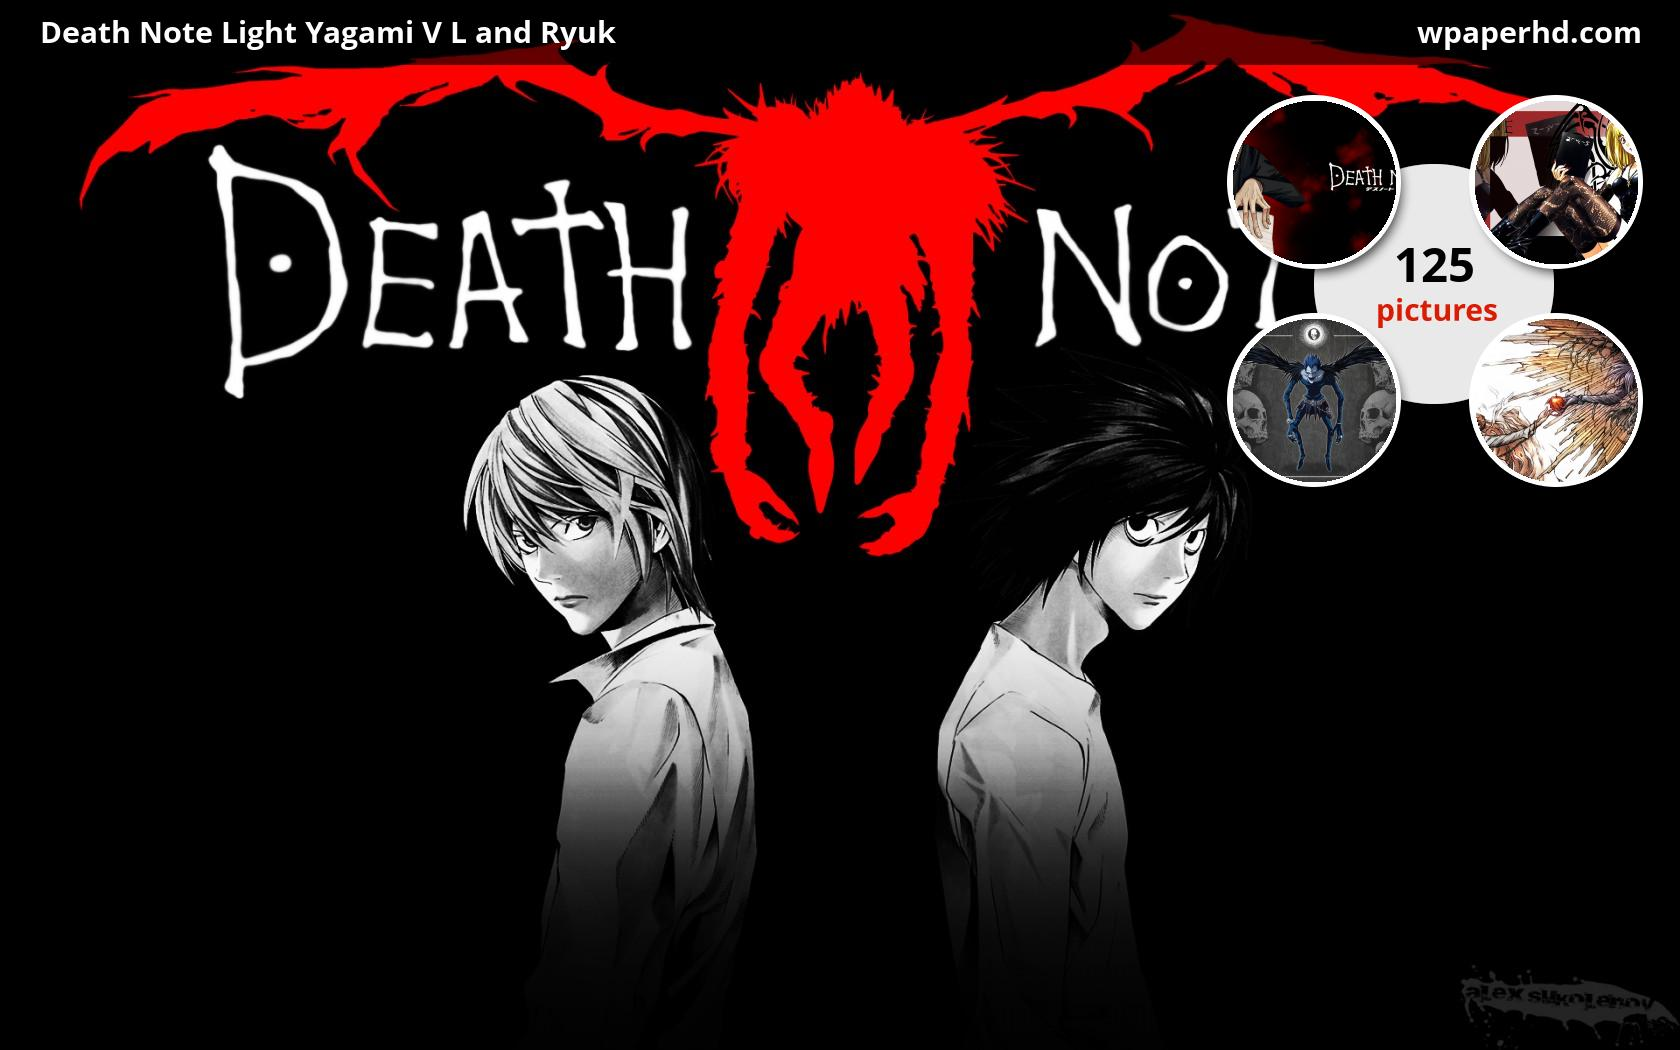 Death Note Hd Posted By Ryan Tremblay